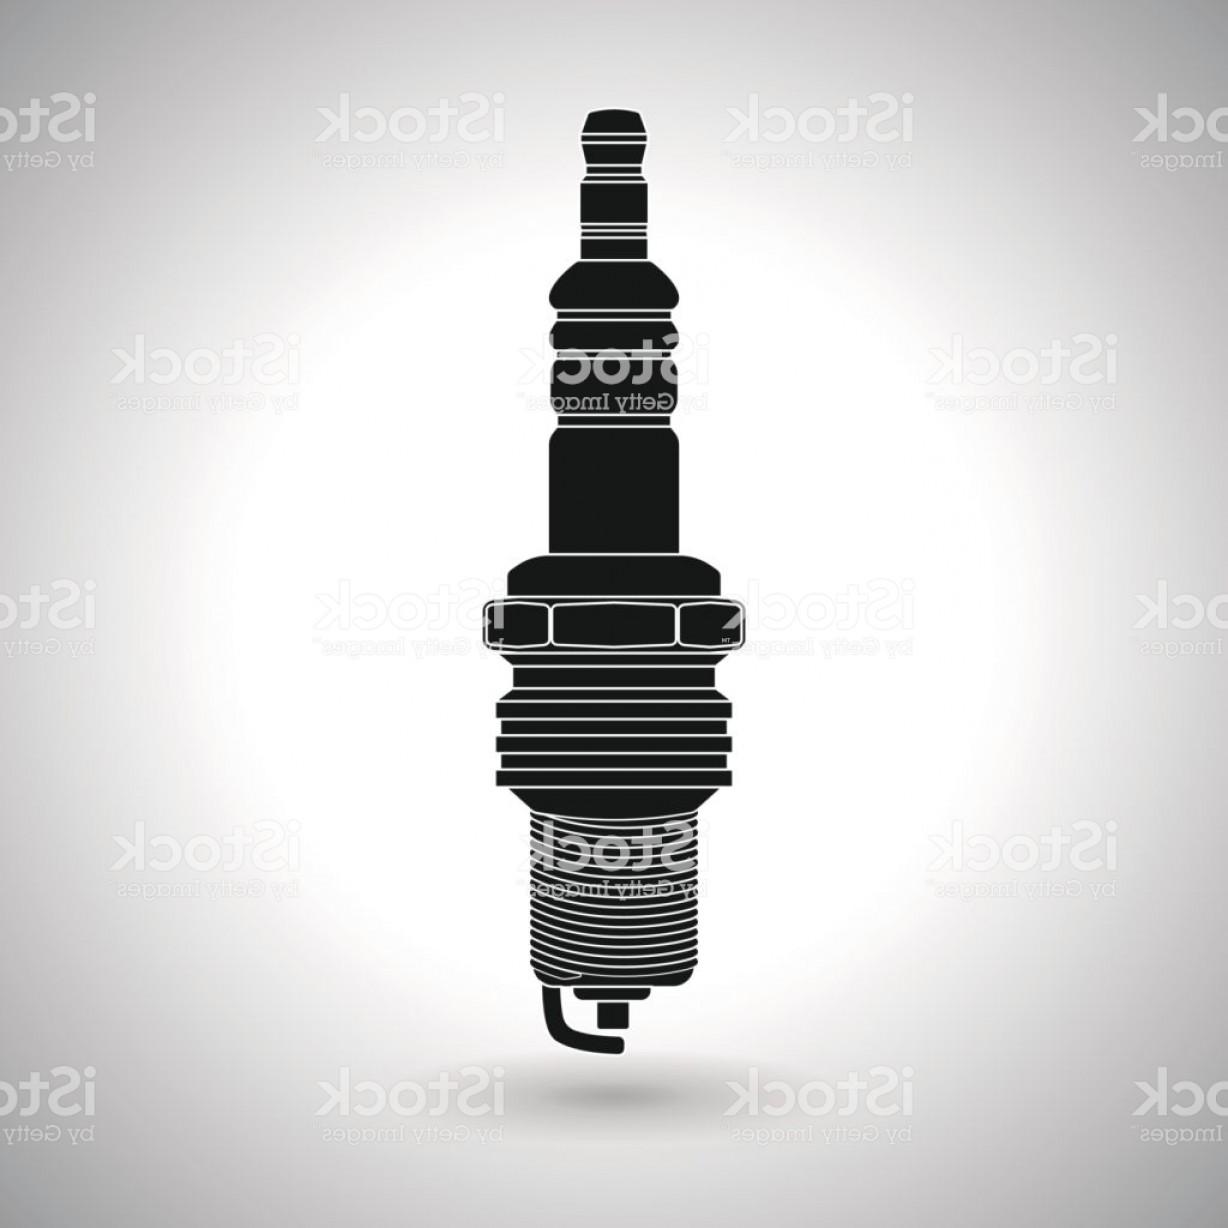 Spark Plug Vector: Vehicle Spark Plug Outline Black Drawing Gm